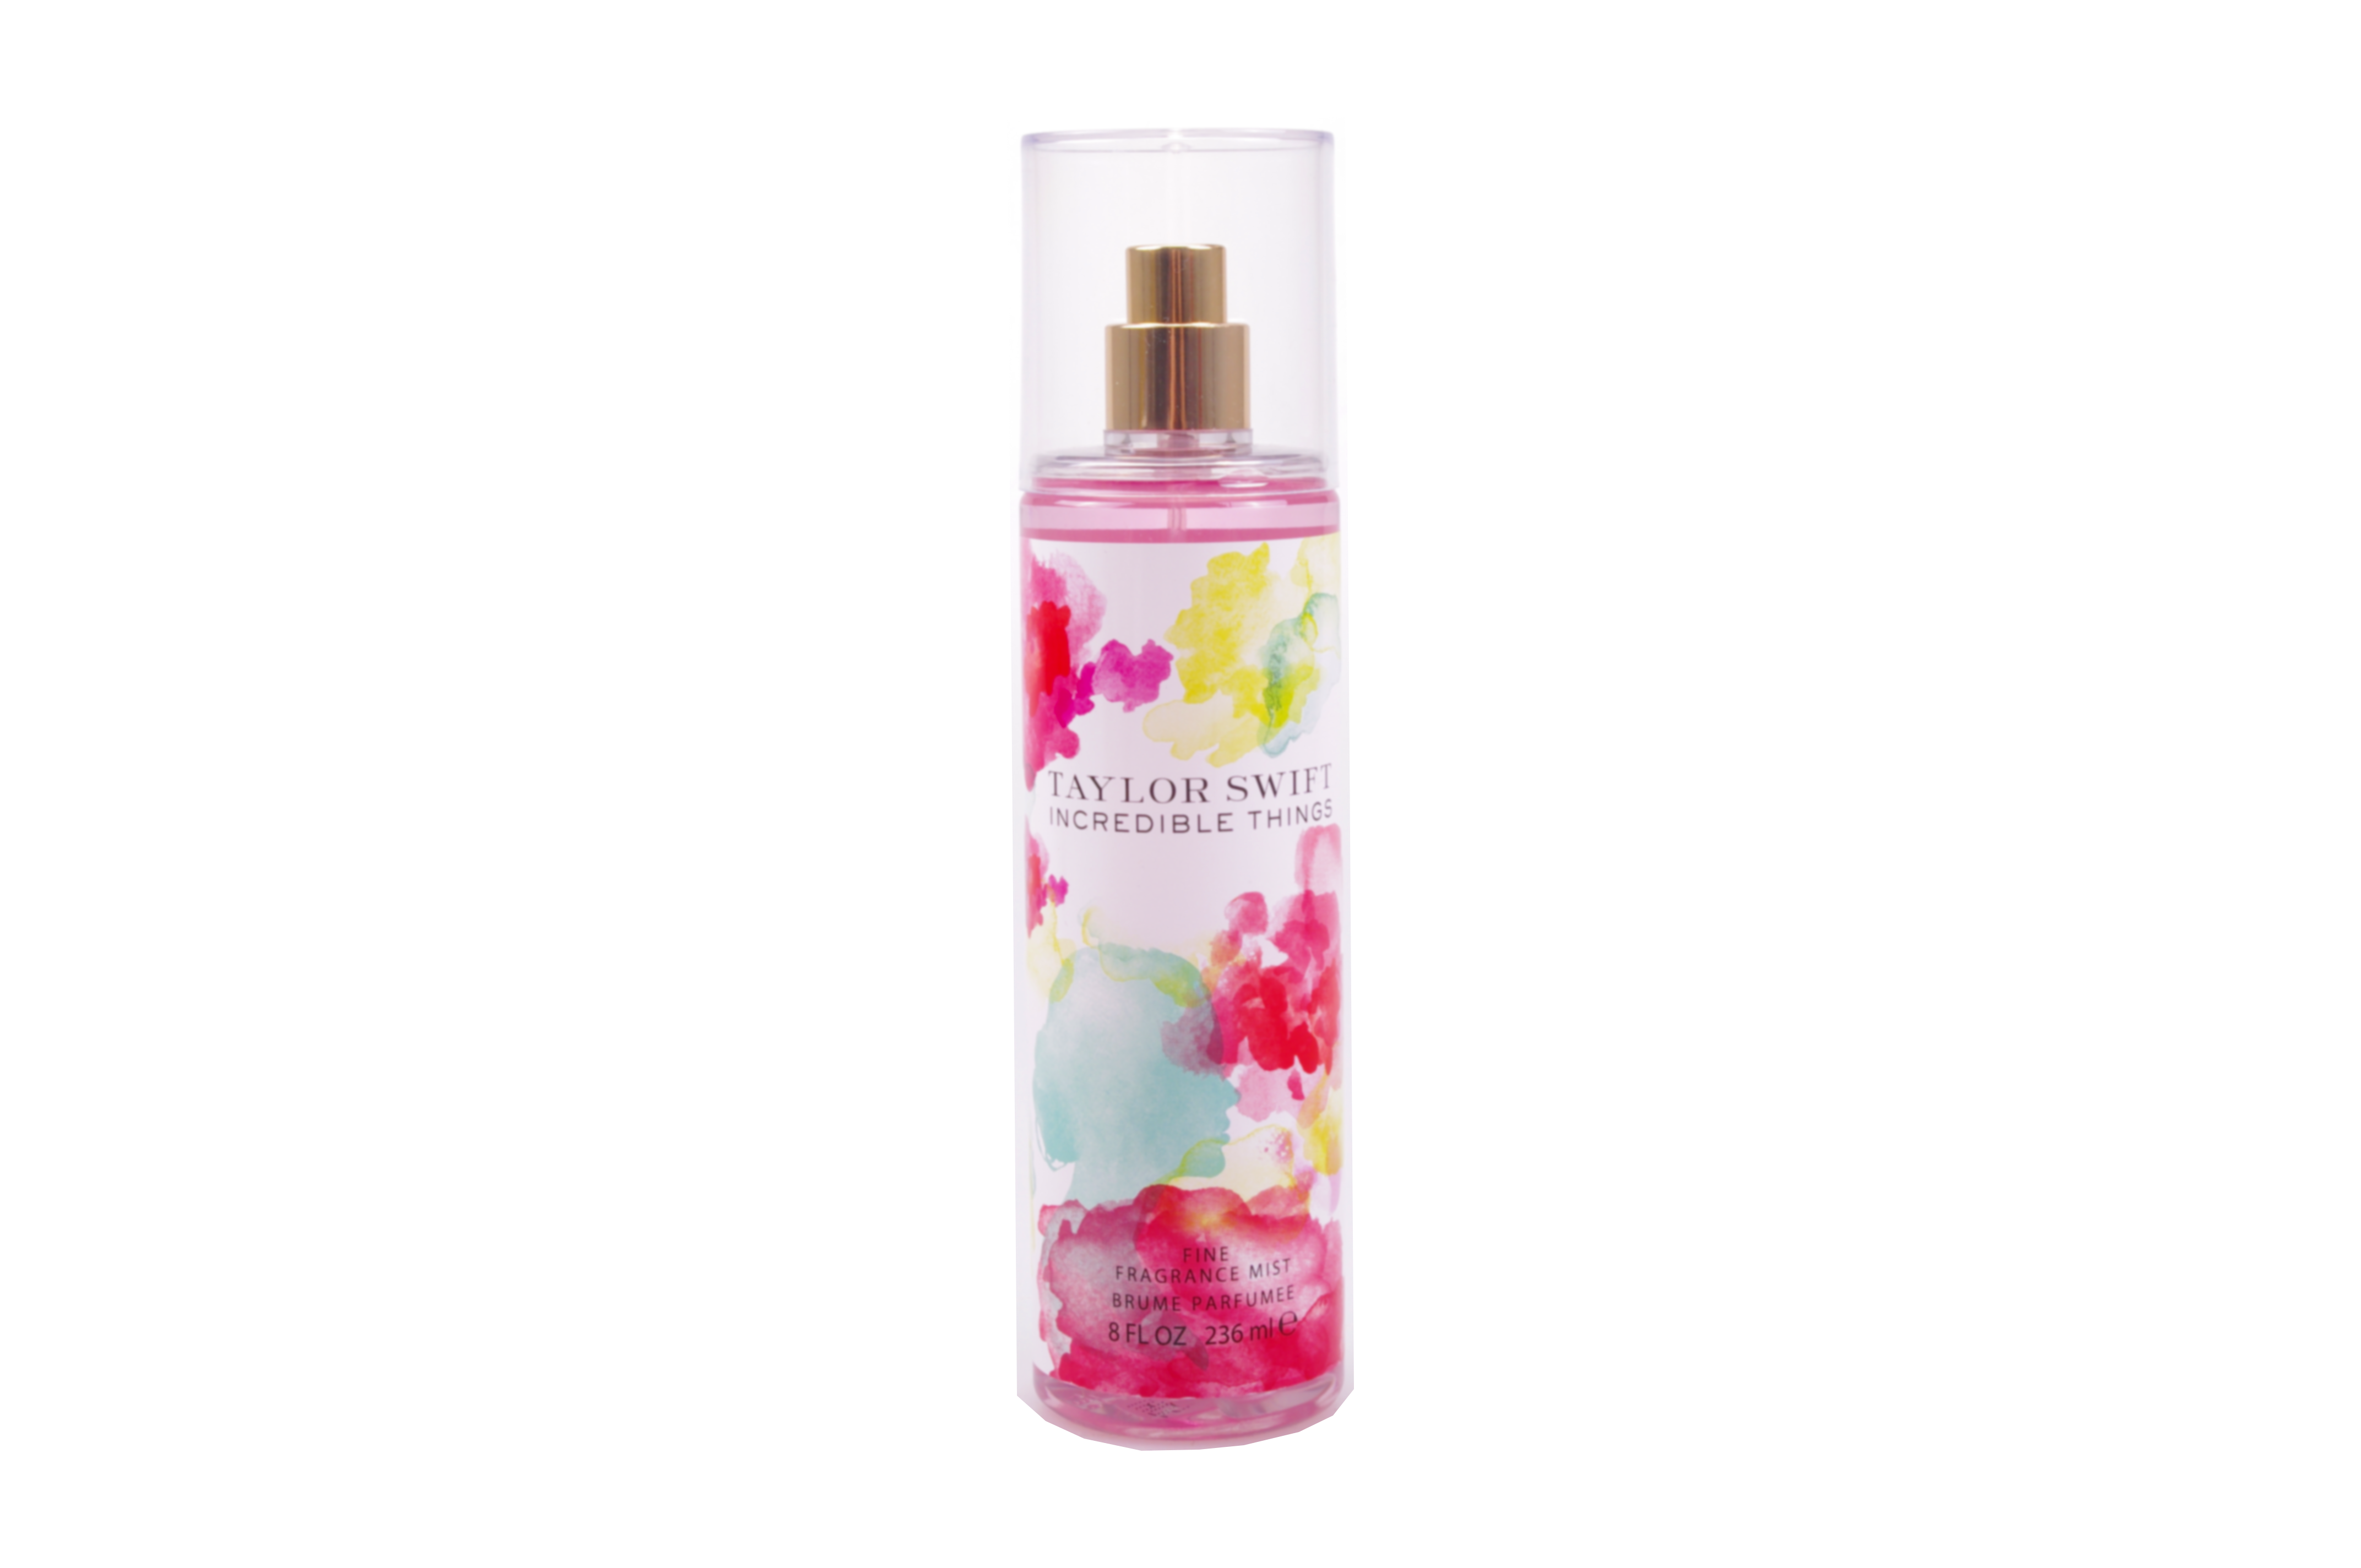 TAYLOR SWIFT INCREDIBLE THINGS 8 OZ FRAGRANCE MIST